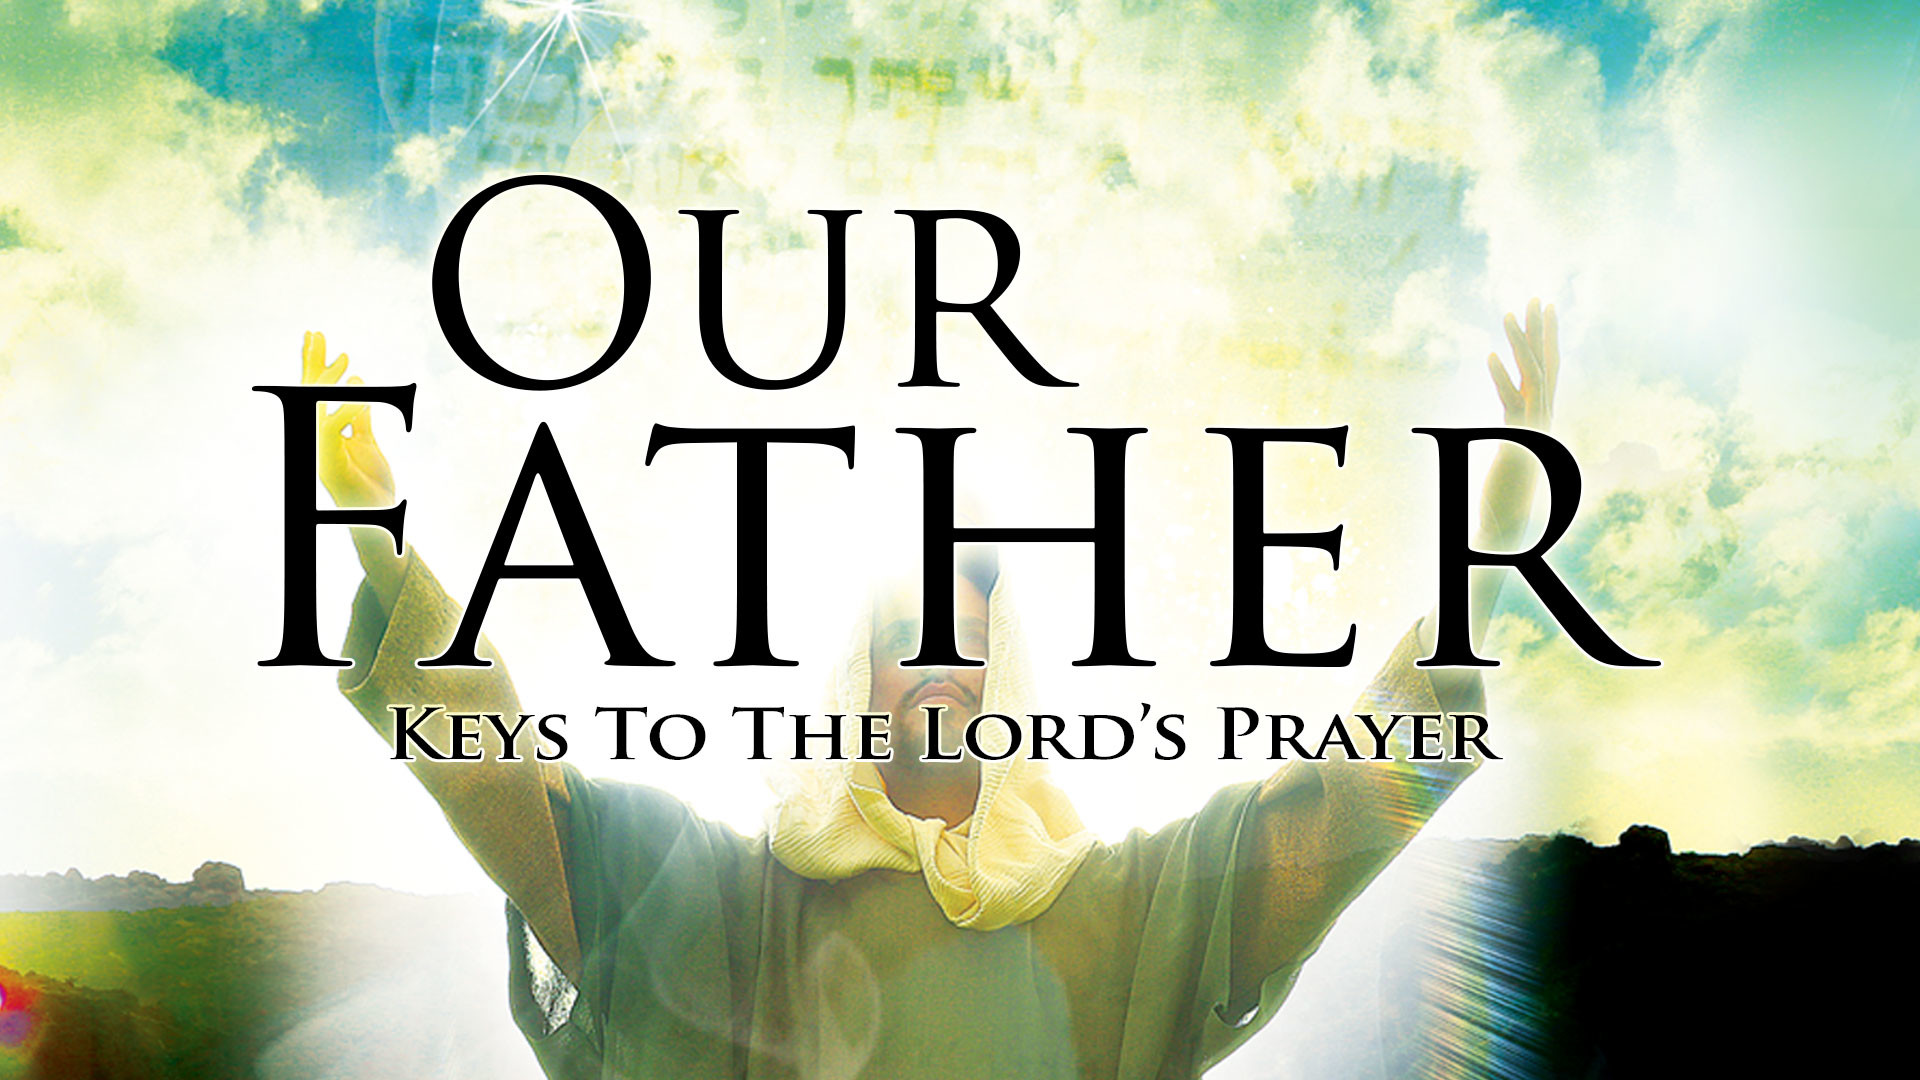 Res: 1920x1080, Our Father: Keys to the Lord's Prayer